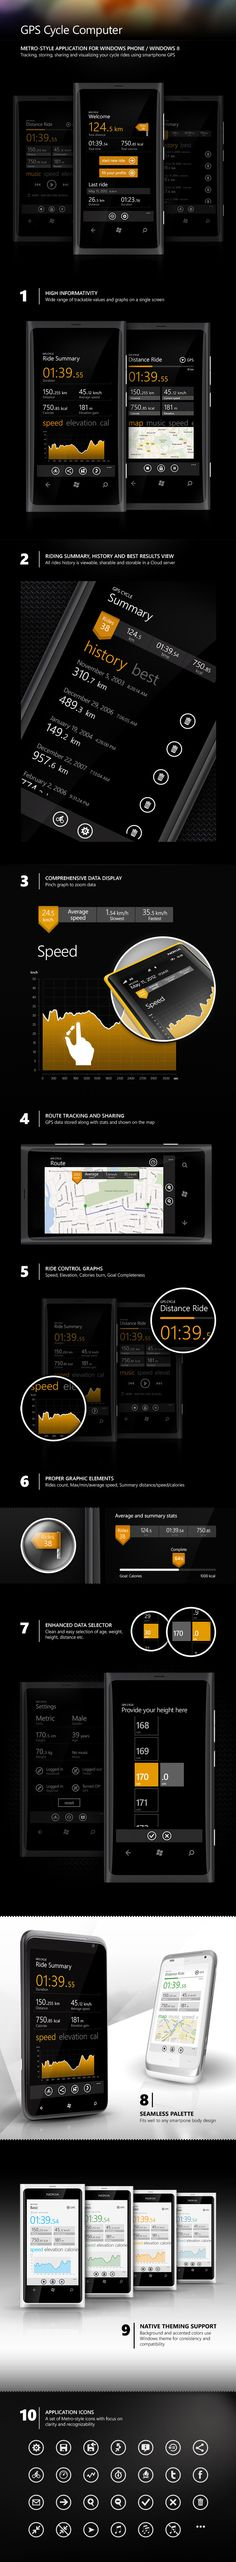 GPS Cycle (Metro application) by Alexey Tcherniak, via #Behance #Mobile